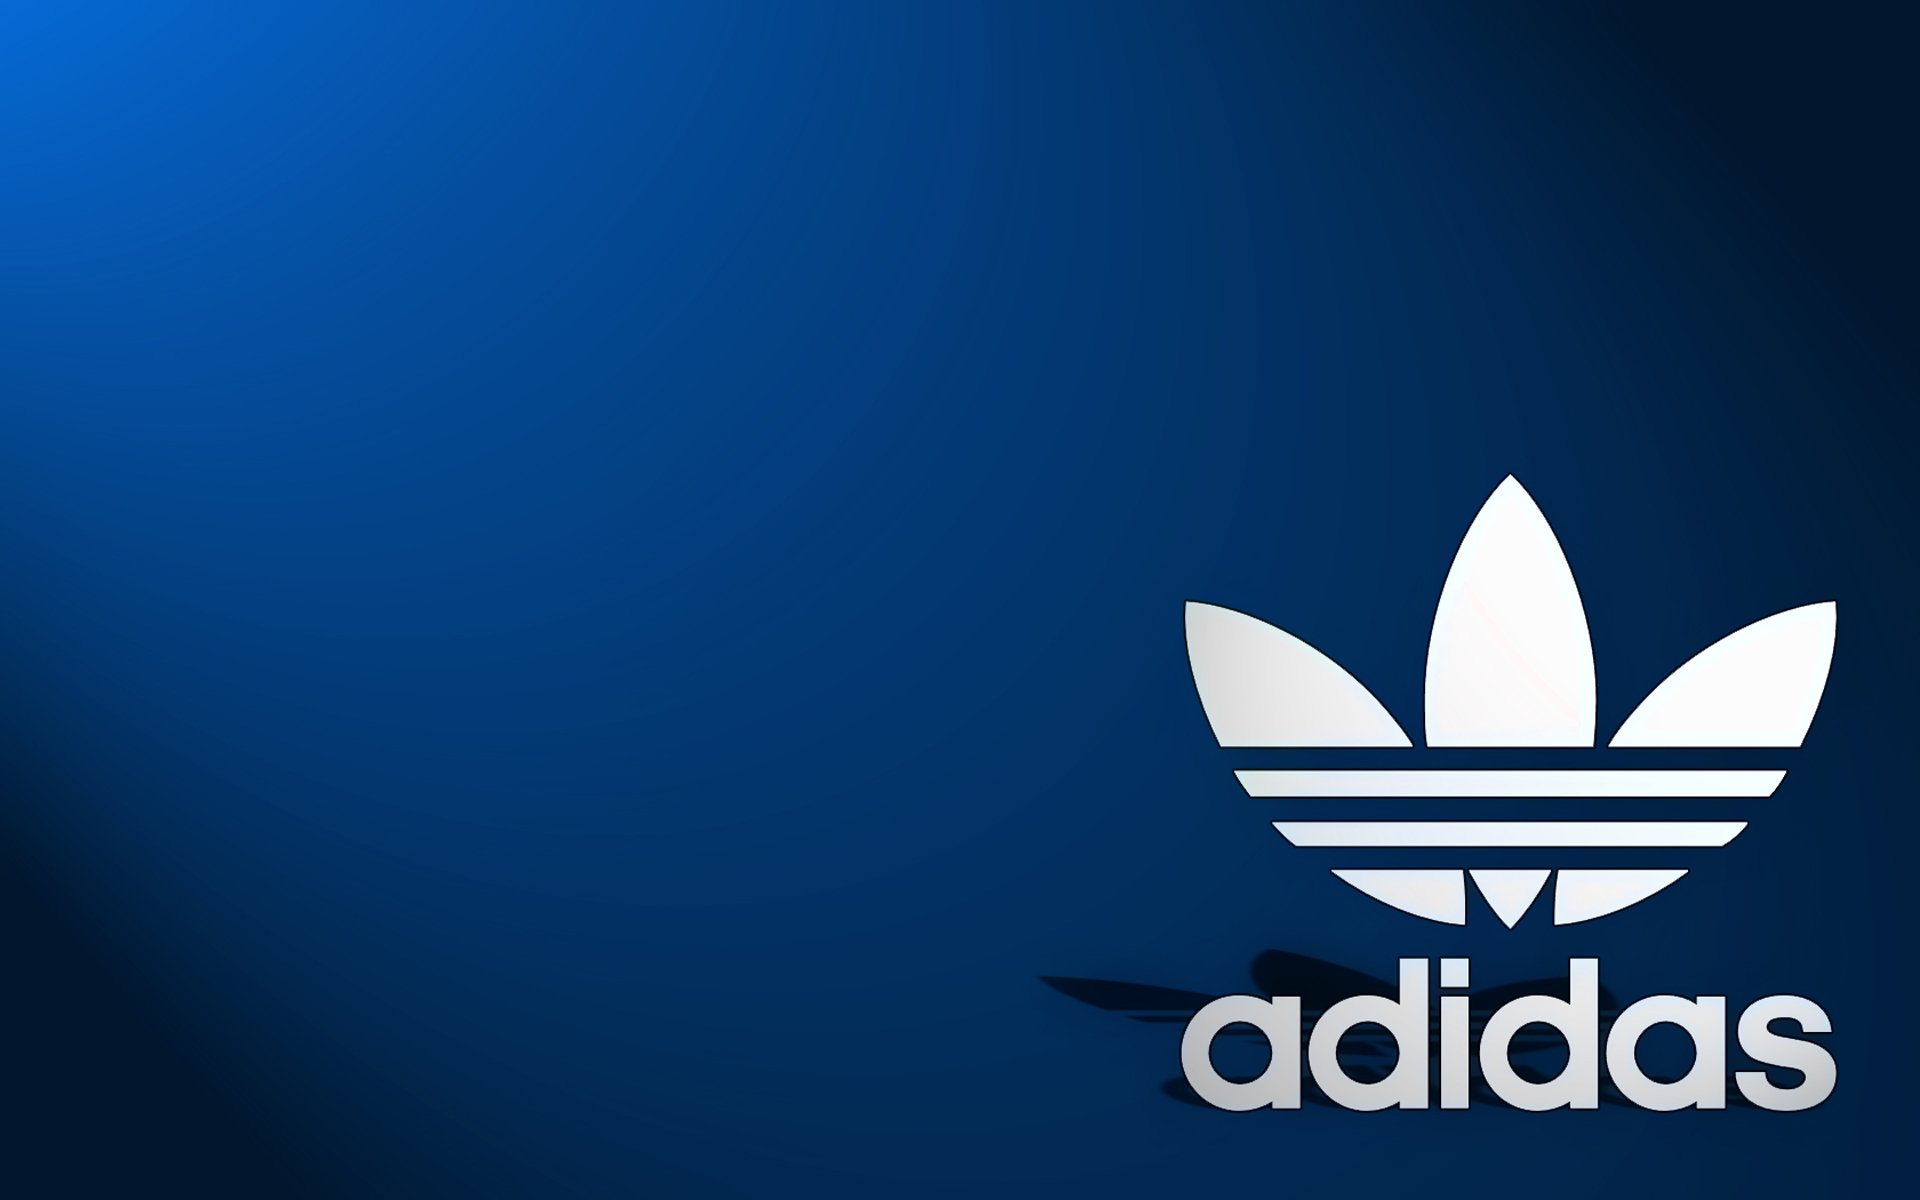 28 Adidas HD Wallpapers | Backgrounds - Wallpaper Abyss